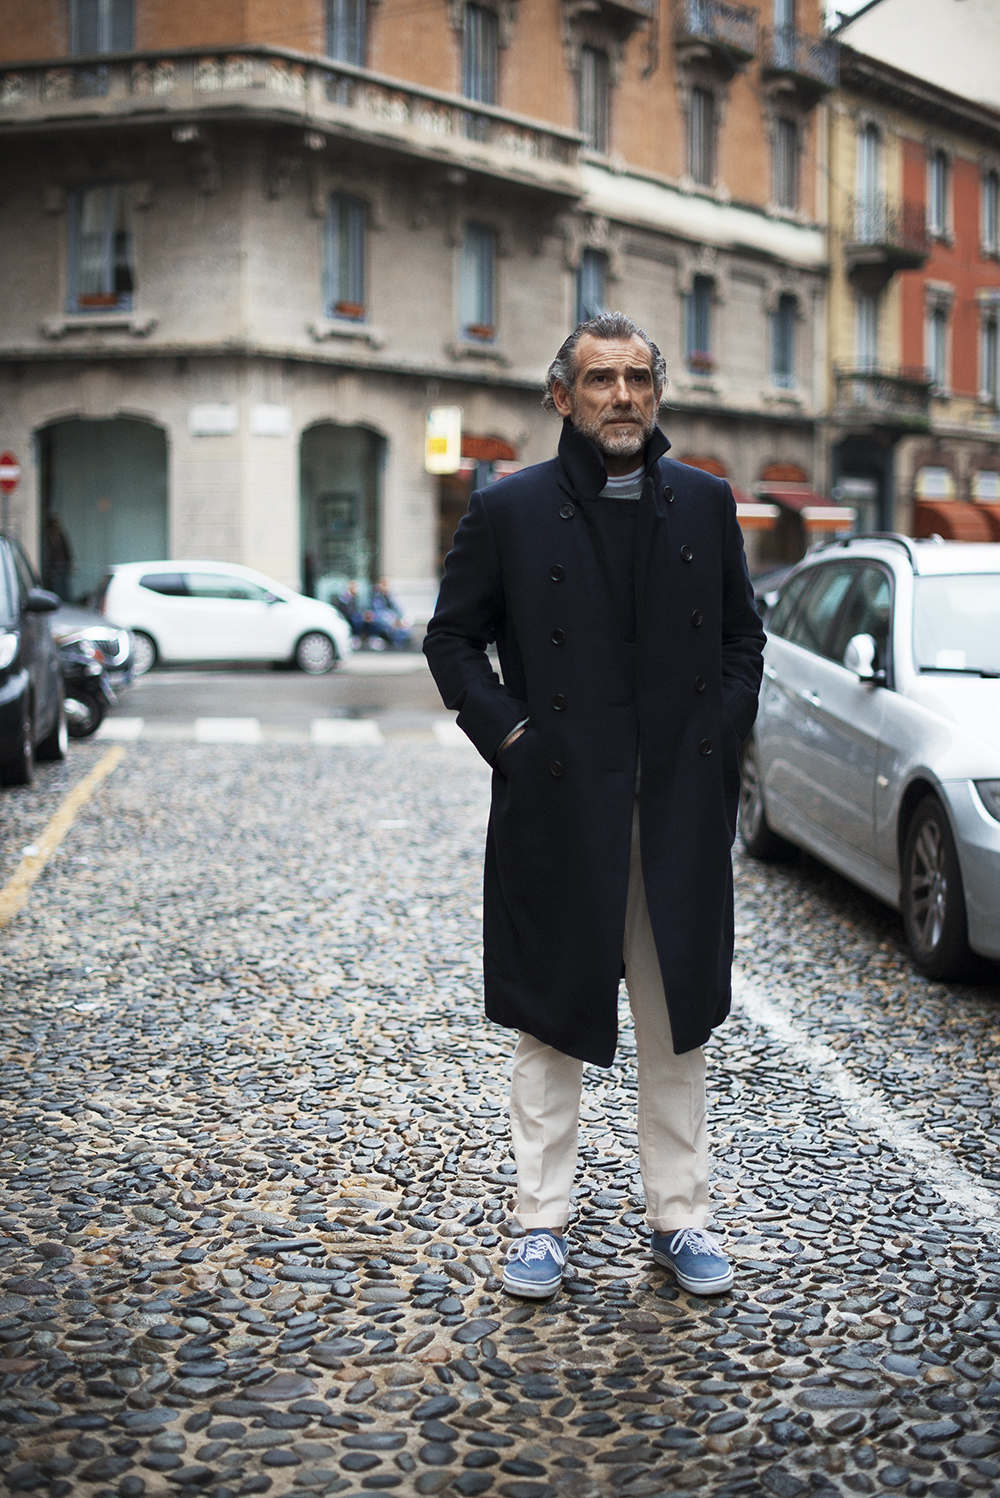 Alessandro Squarzi  as featured in the  Men In This Town    book  .